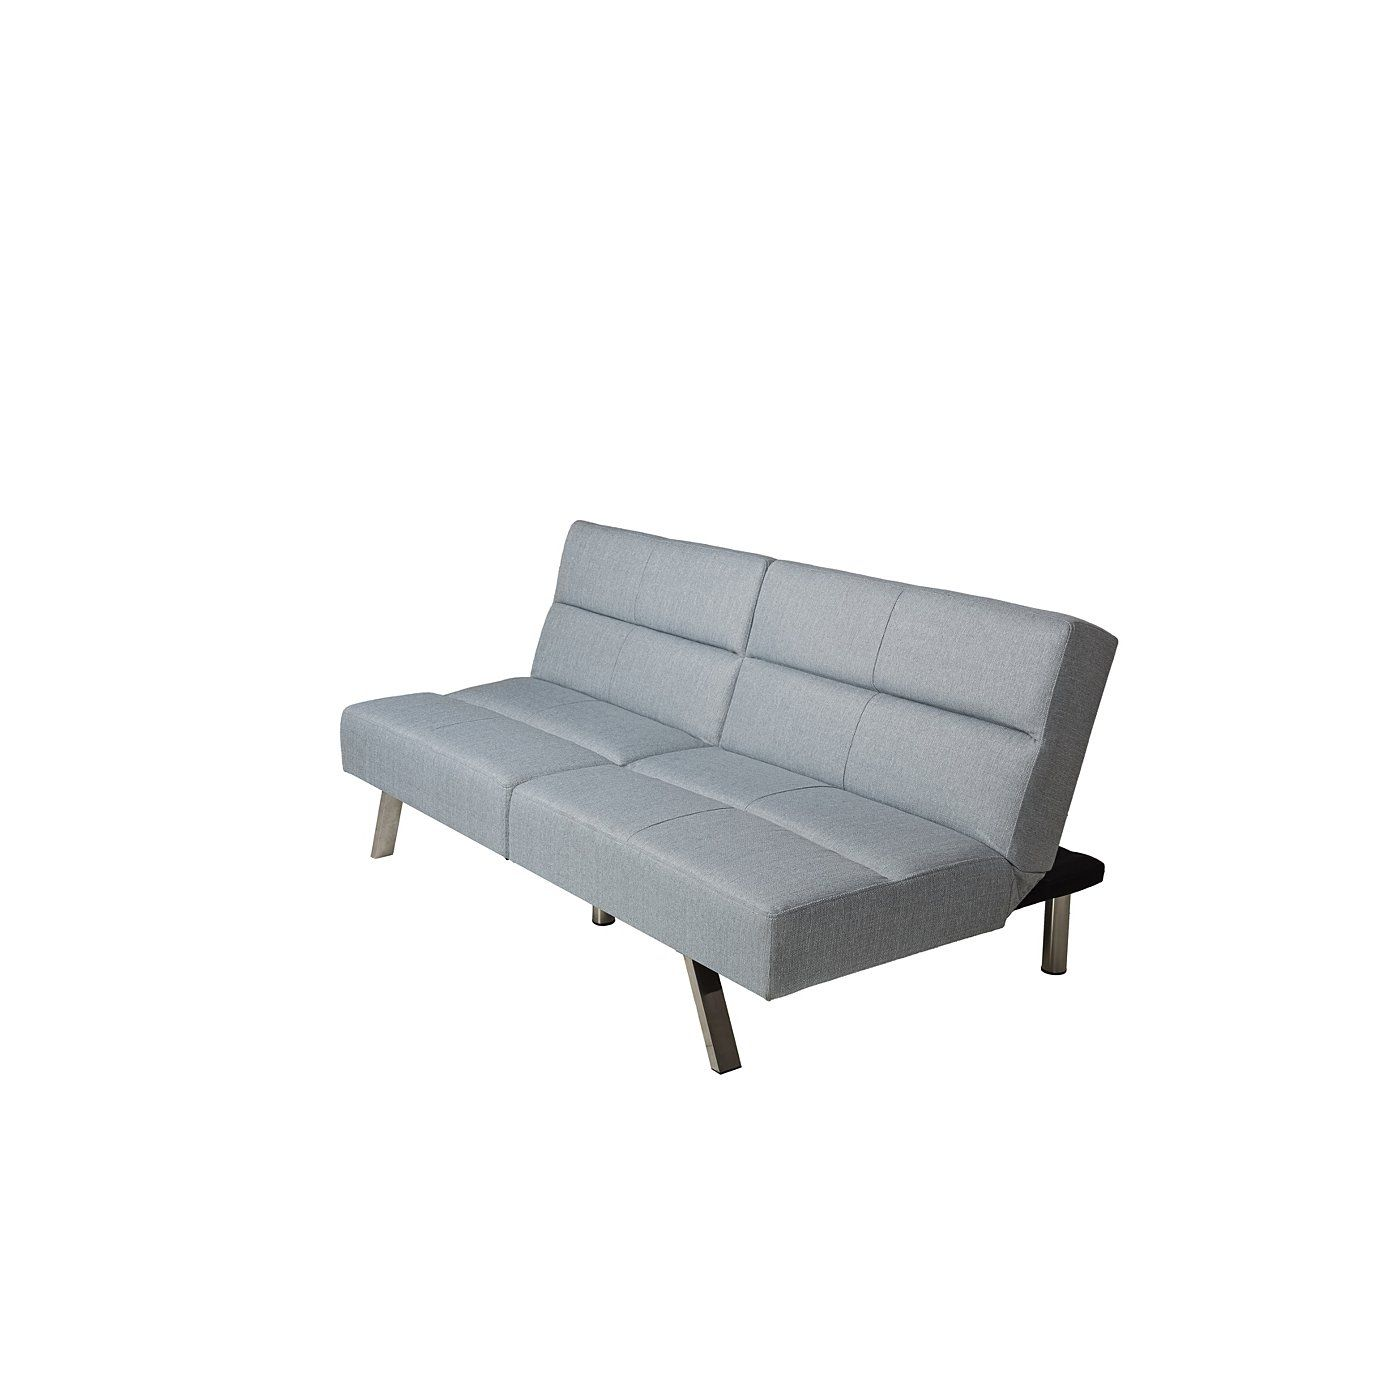 129 Tenby Click Clack Fabric Sofa Bed In Various Colours From Our Beds Range Today Asda Direct